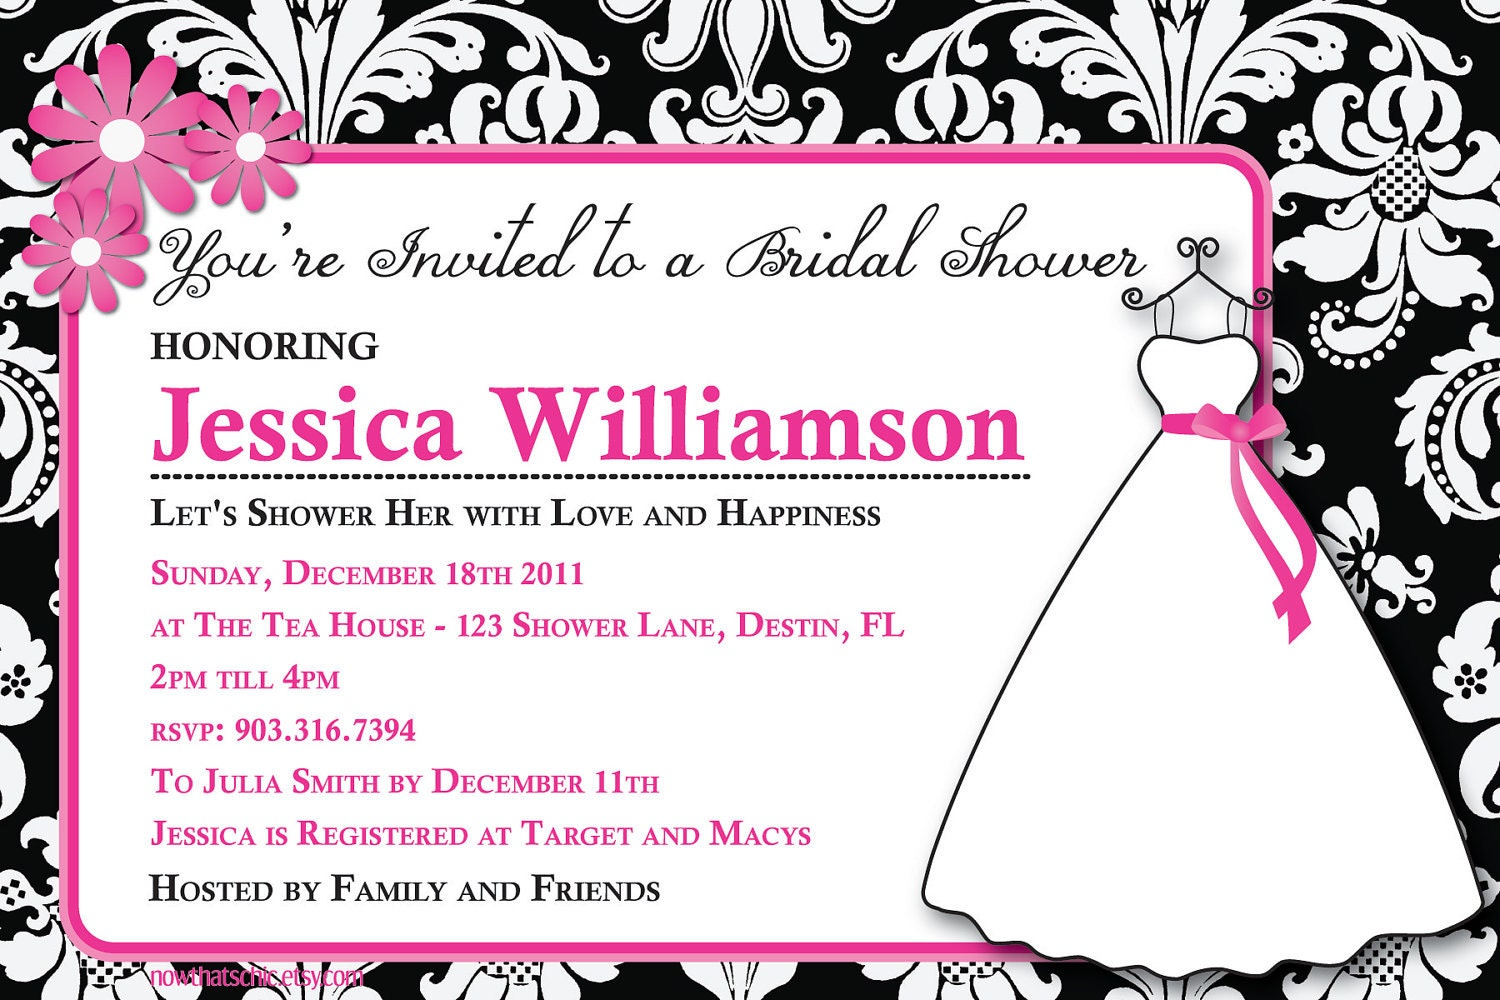 Bridal Shower Invitation - Pink and Black Damask - Digital Invitation ...